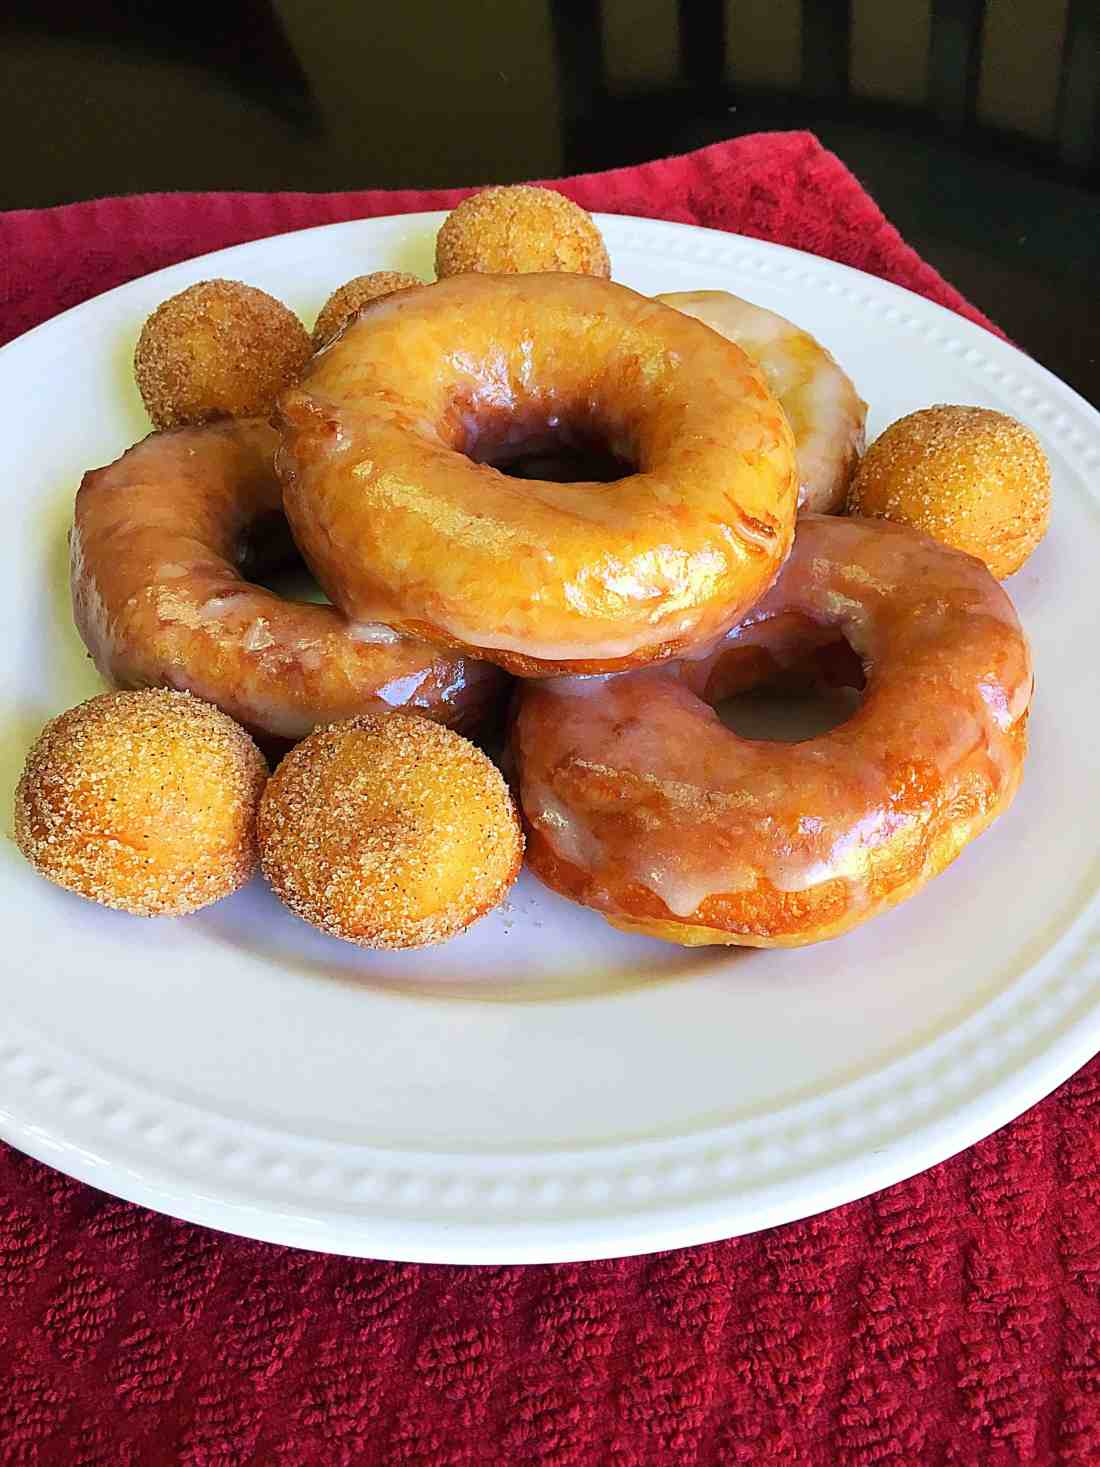 Mouthwatering Biscuit Donuts- These easy-to-make glazed doughnuts are made from canned biscuits and are absolutely mouthwatering! Trust me, you won't be able to eat just one of these yummy biscuit donuts and they only take just a few minutes to make!